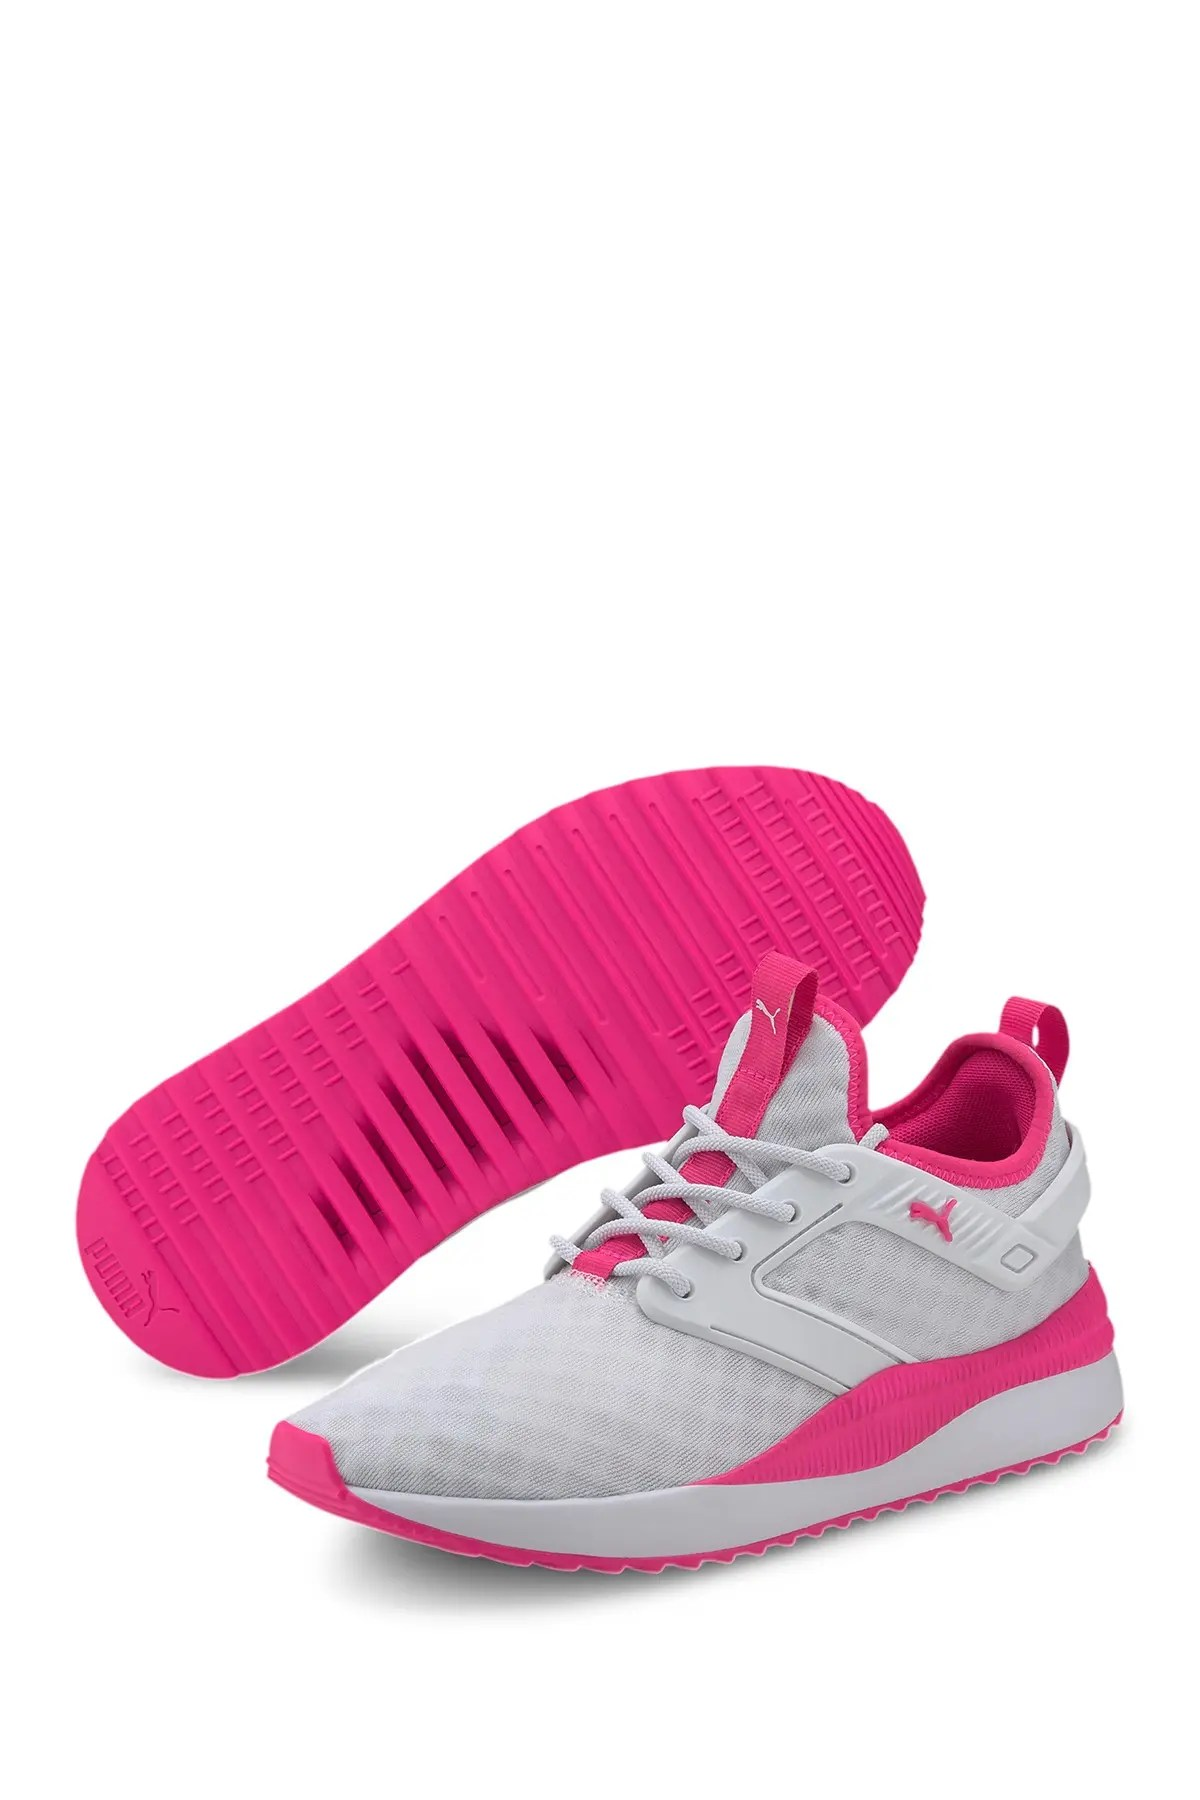 pacer next excel core sneaker